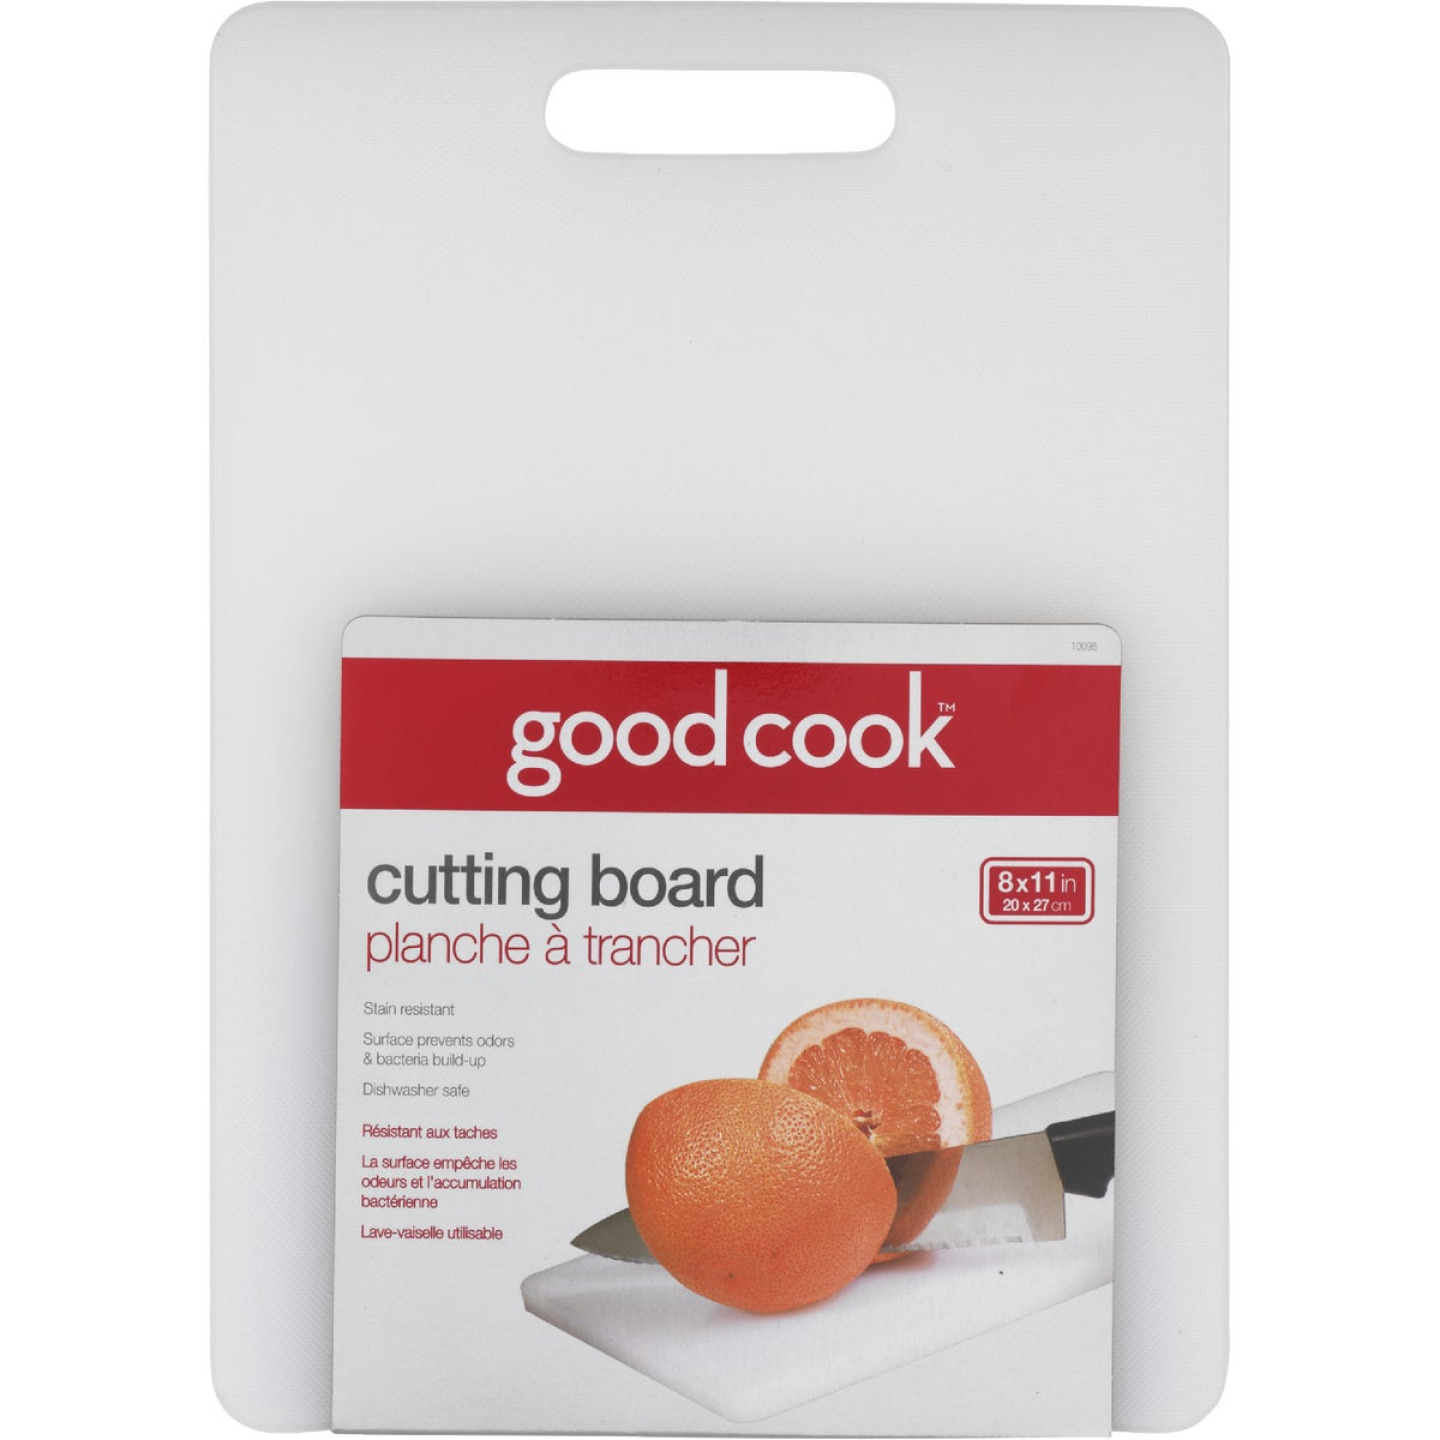 Goodcook 8 In. x 11 In. White Cutting Board Image 1